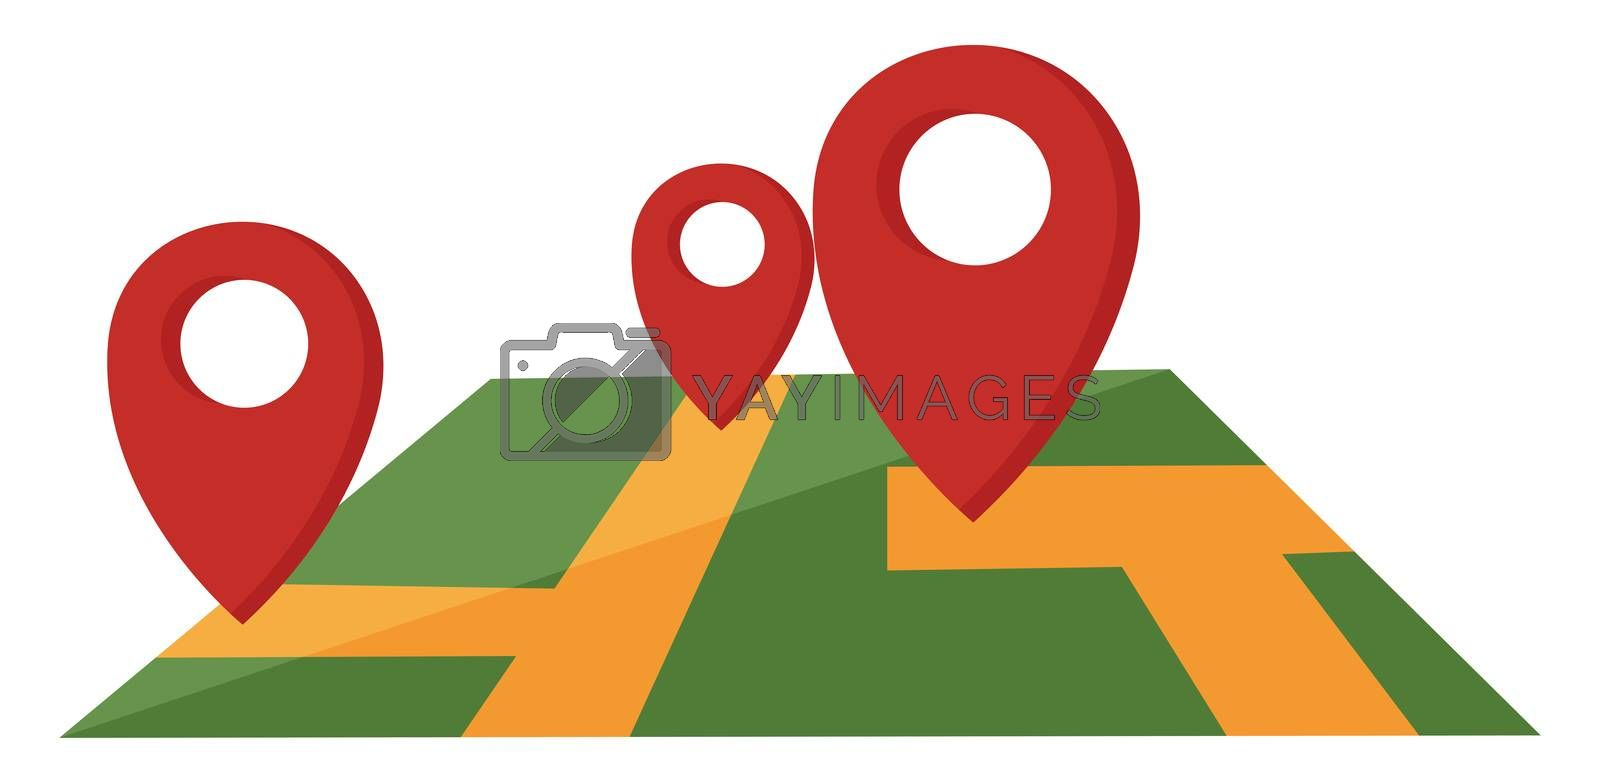 Navigation map, illustration, vector on white background